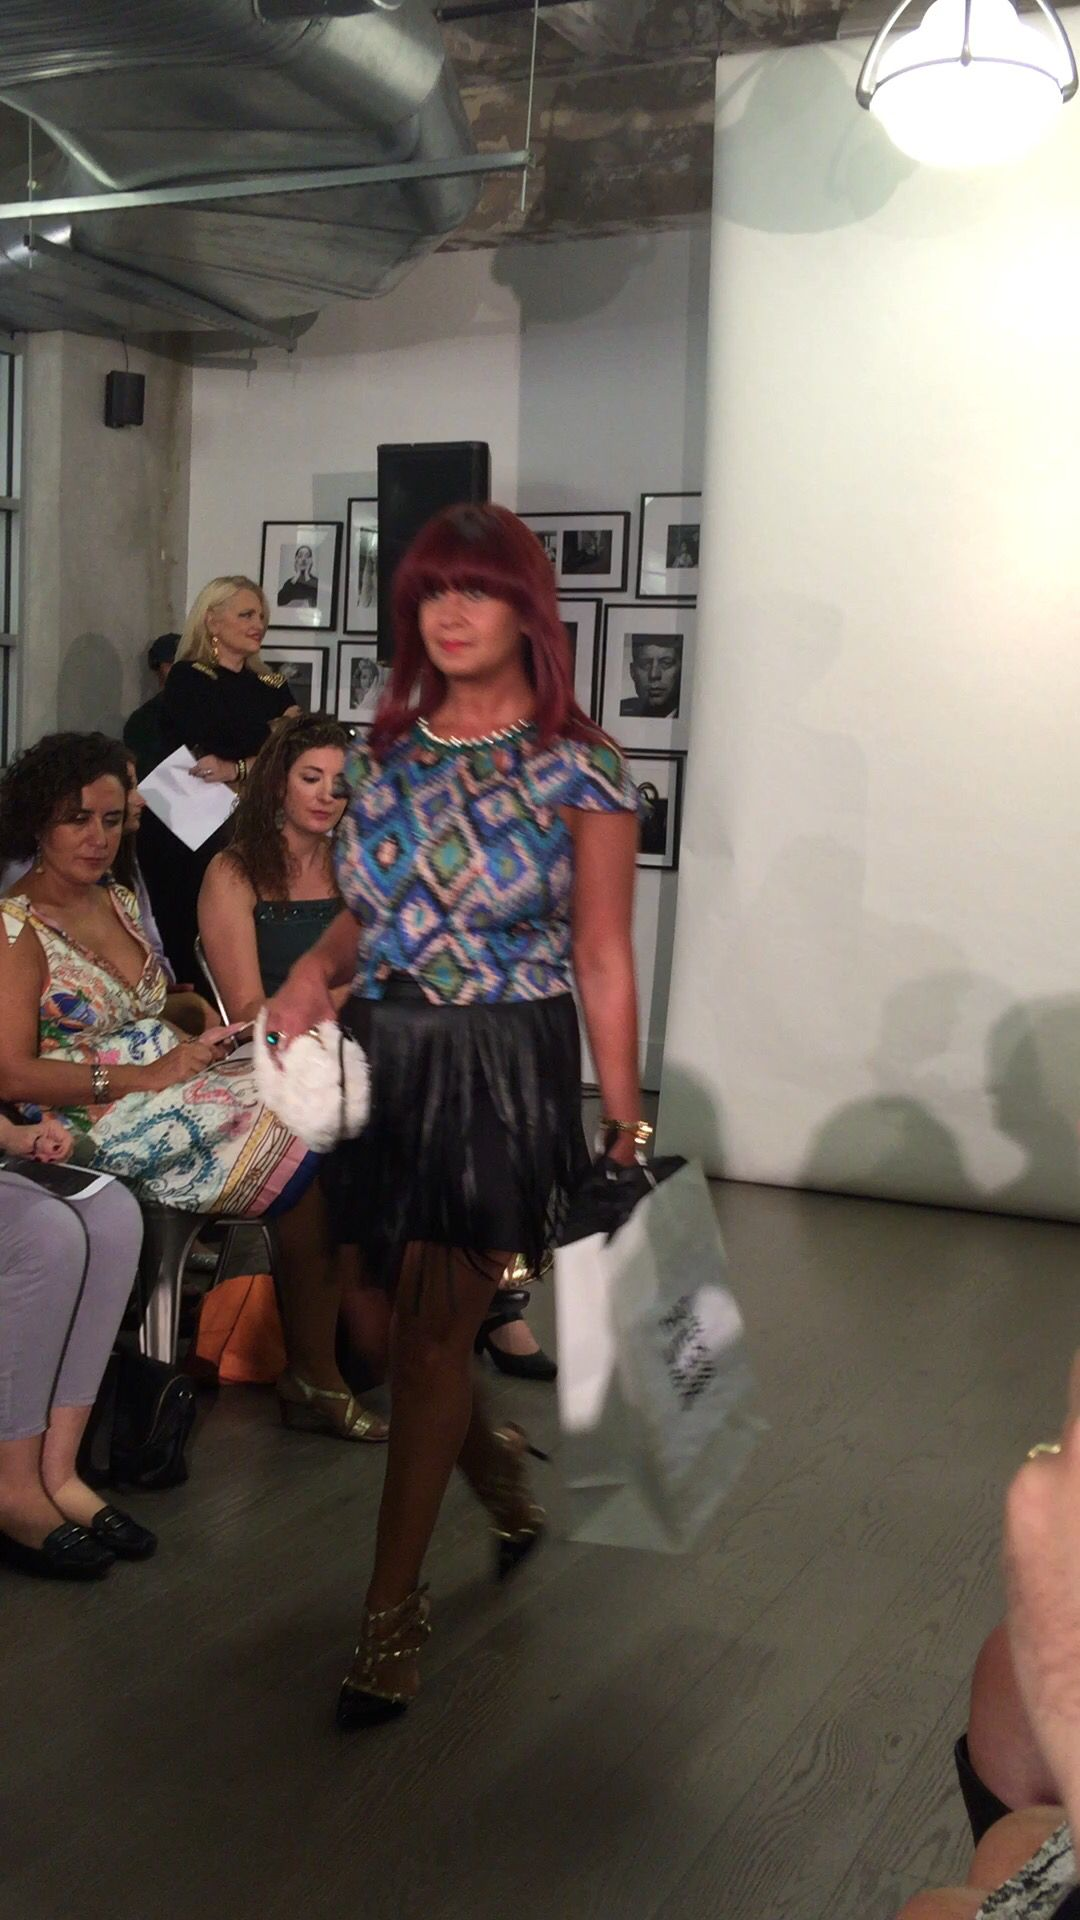 e1b364e86 My debut on the #runway. Thrilled to be wearing my evening outfit ...